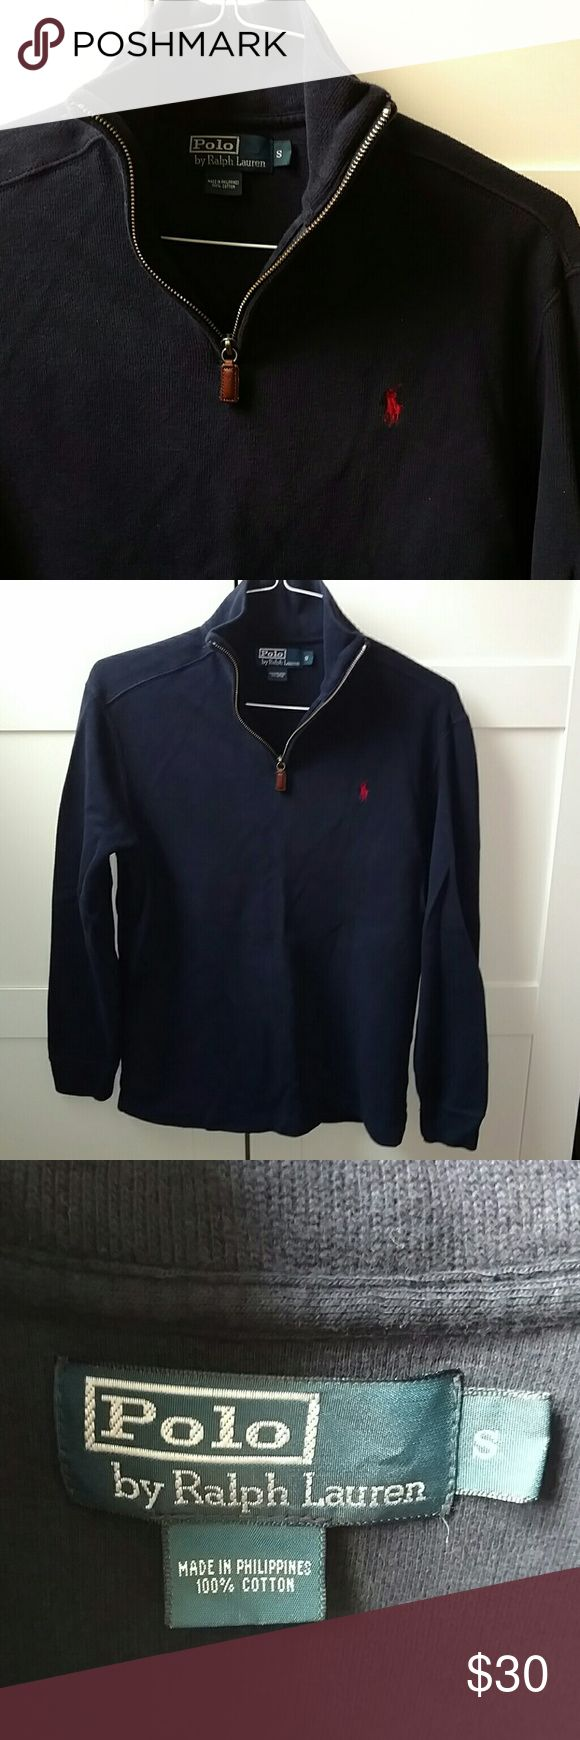 Navy blue cotton half zip sweater by Polo men's S This half zip sweater by Polo by Ralph Lauren is navy blue and 100% cotton.  Men's small Polo by Ralph Lauren Sweaters Zip Up